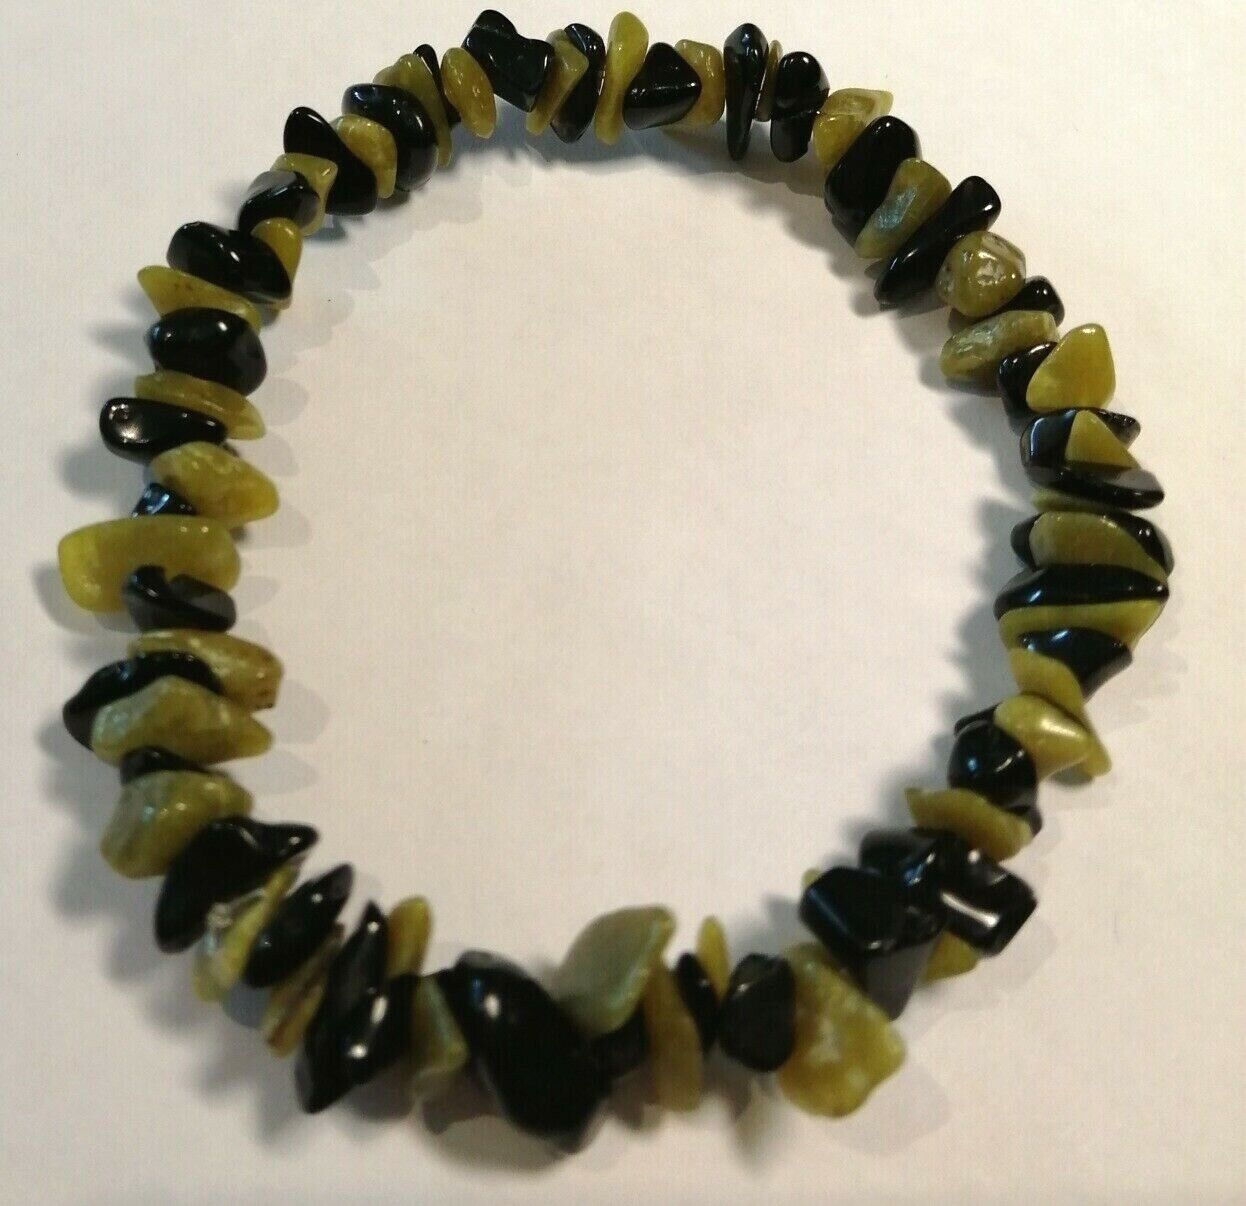 PERIDOT AND BLACK OBSIDIAN CRYSTAL HEALING CHIP BEAD BRACELET